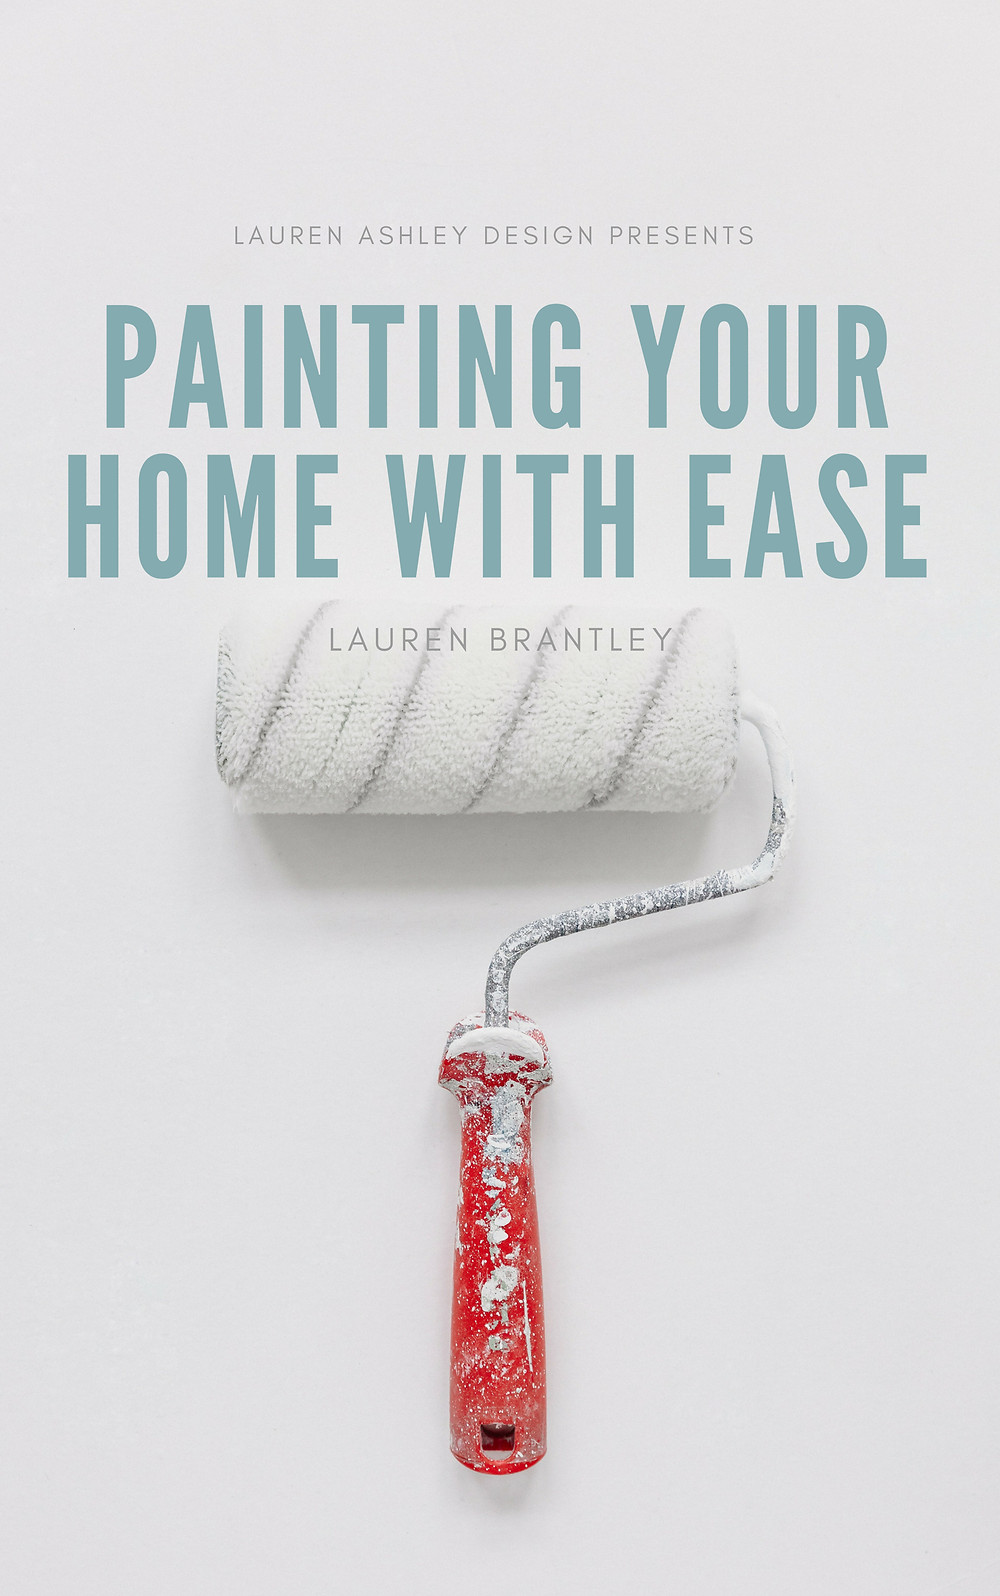 Painting your house with ease | Lauren Ashley Design